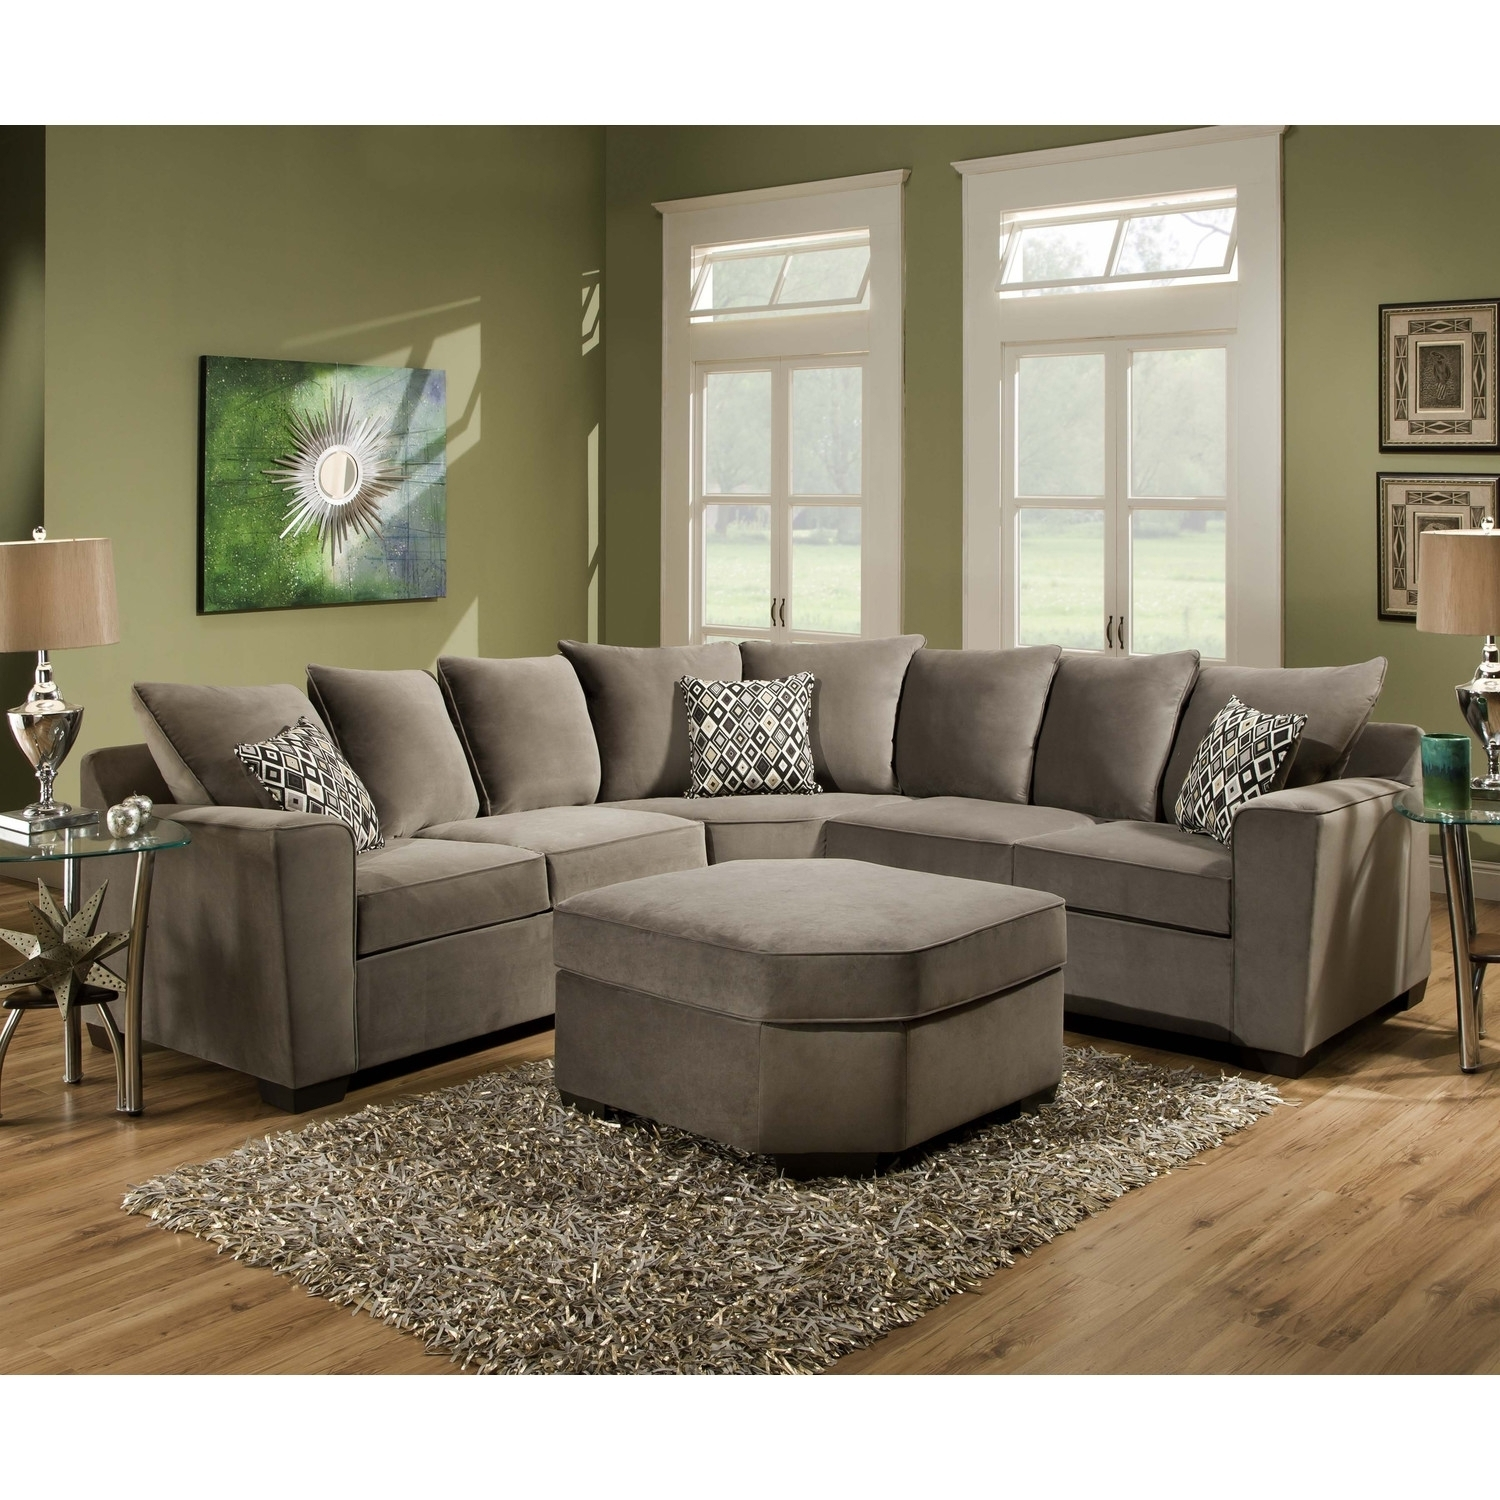 Ultra Plush Sectional Sofa | Sofa Ideas For Plush Sectional Sofas (Image 8 of 10)